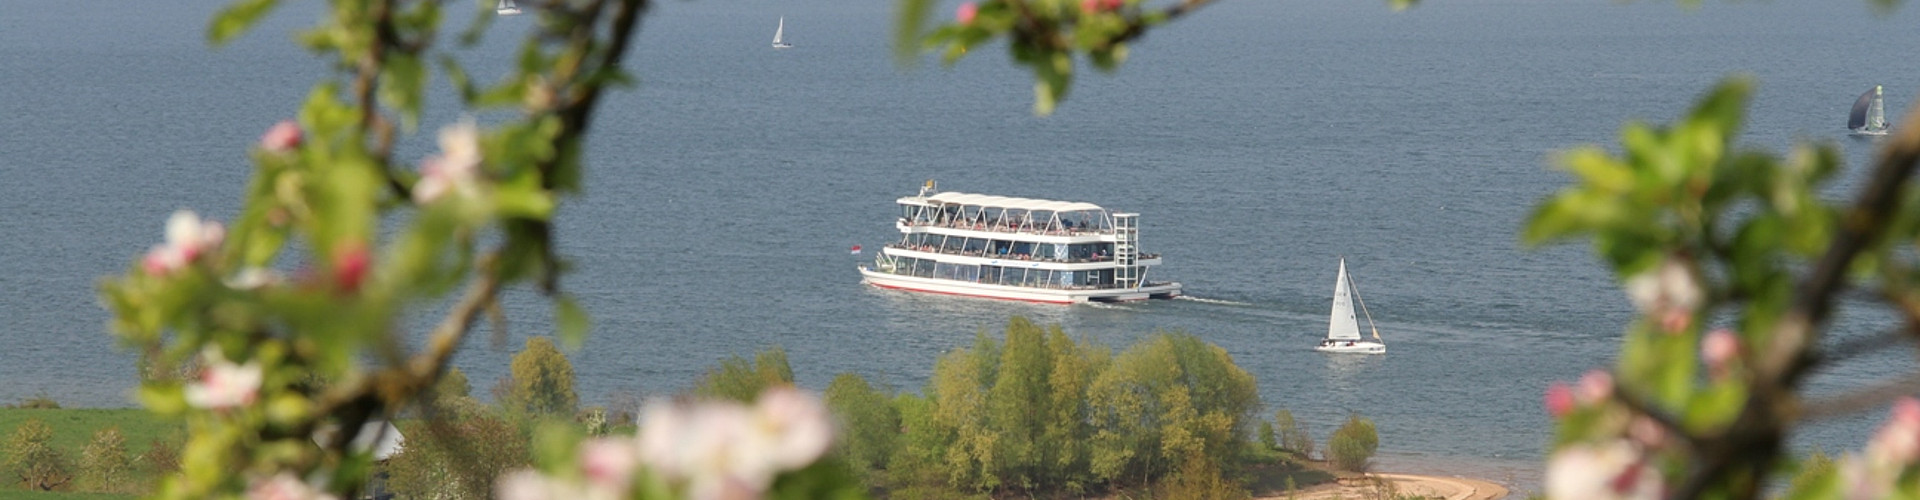 MS Brombachsee mit Kirschblüte